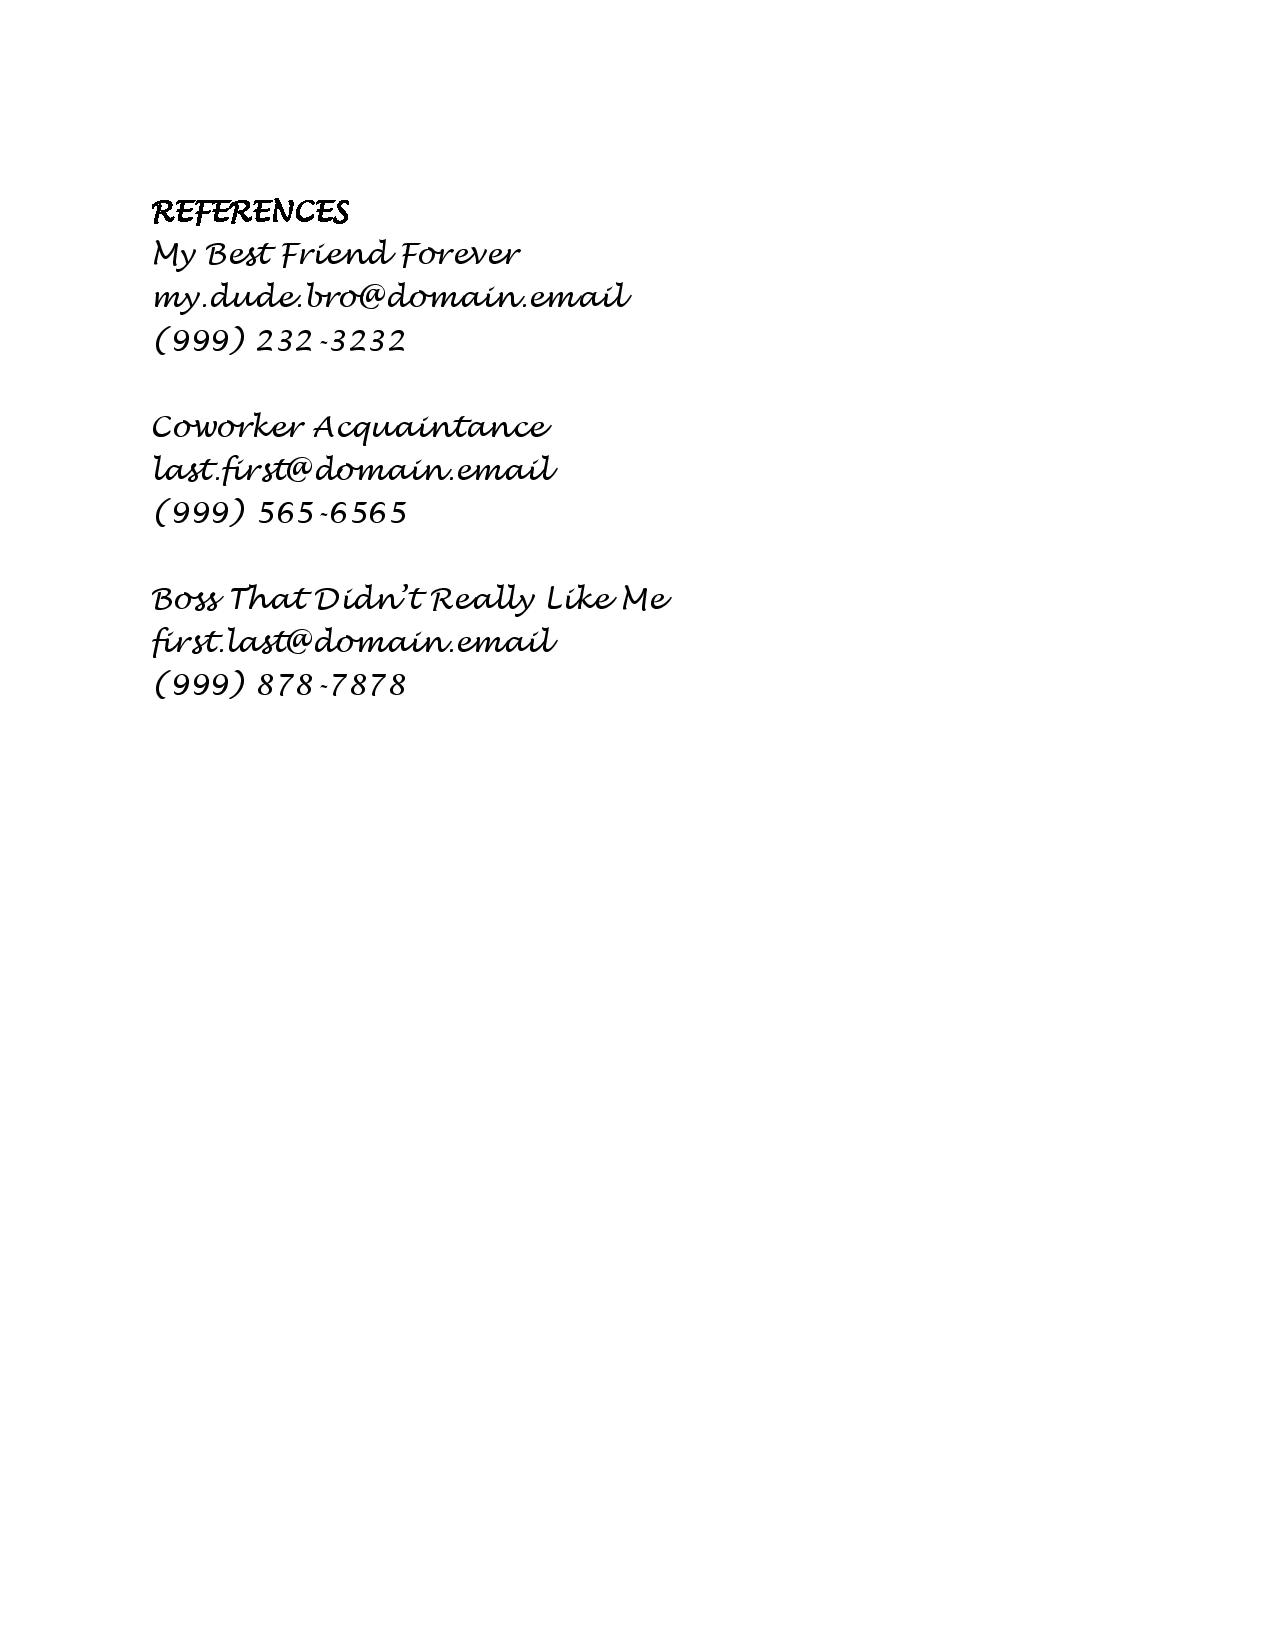 to make resume employers notice lucidpress reference section of example resume2 work Resume Reference Section Of Resume